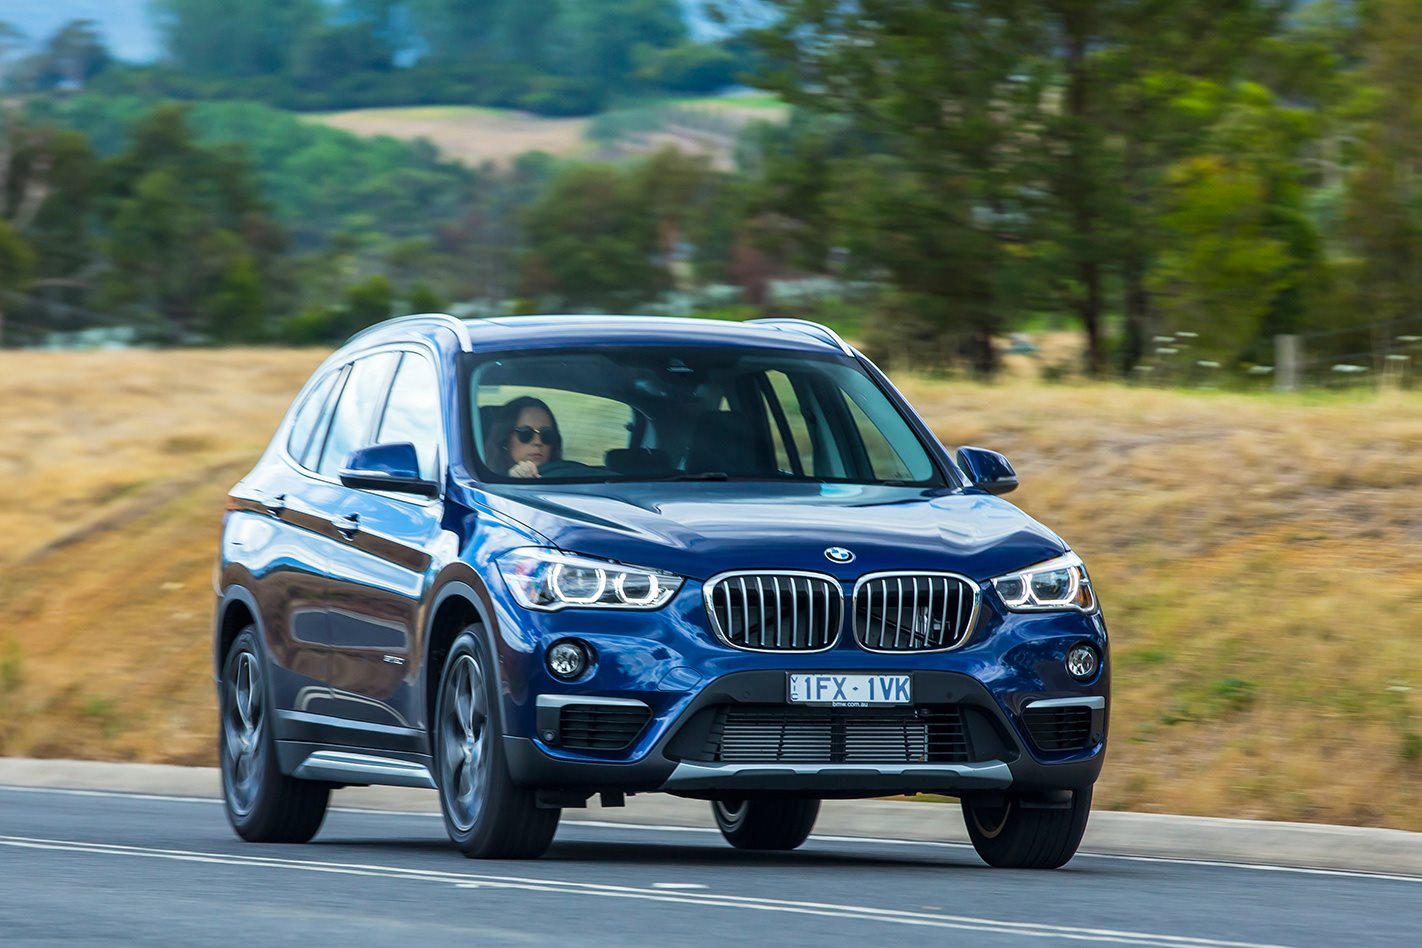 2016 Bmw X1 Sdrive18d And Sdrive20i Review